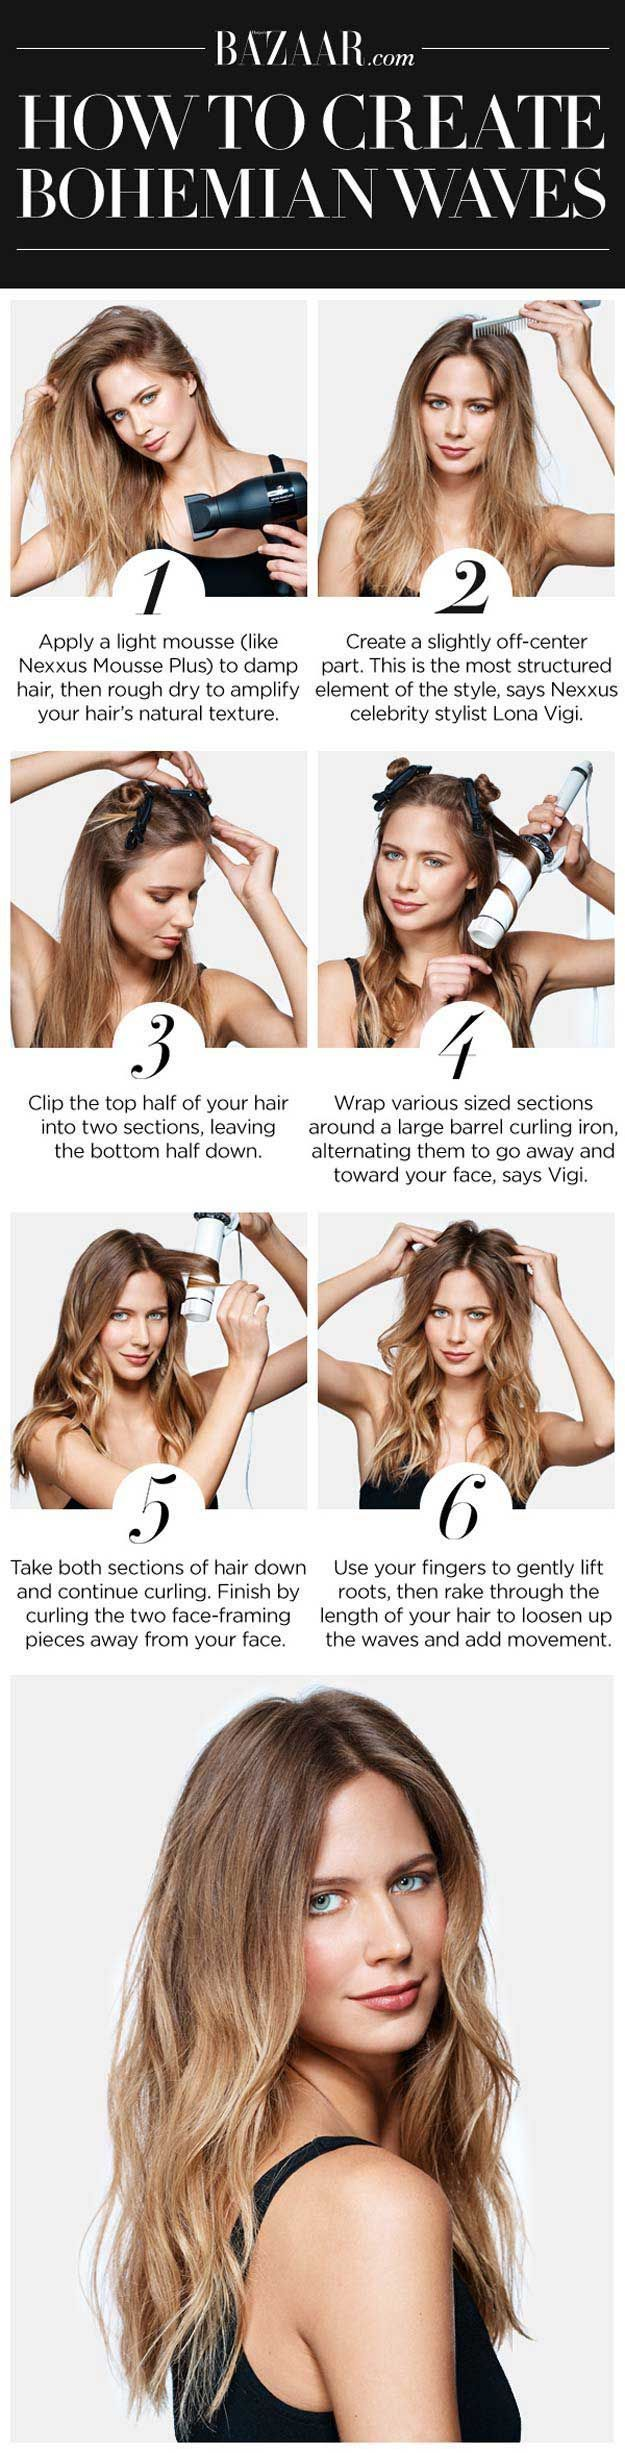 Best hairstyles for summer how to create bohemian waves easy and